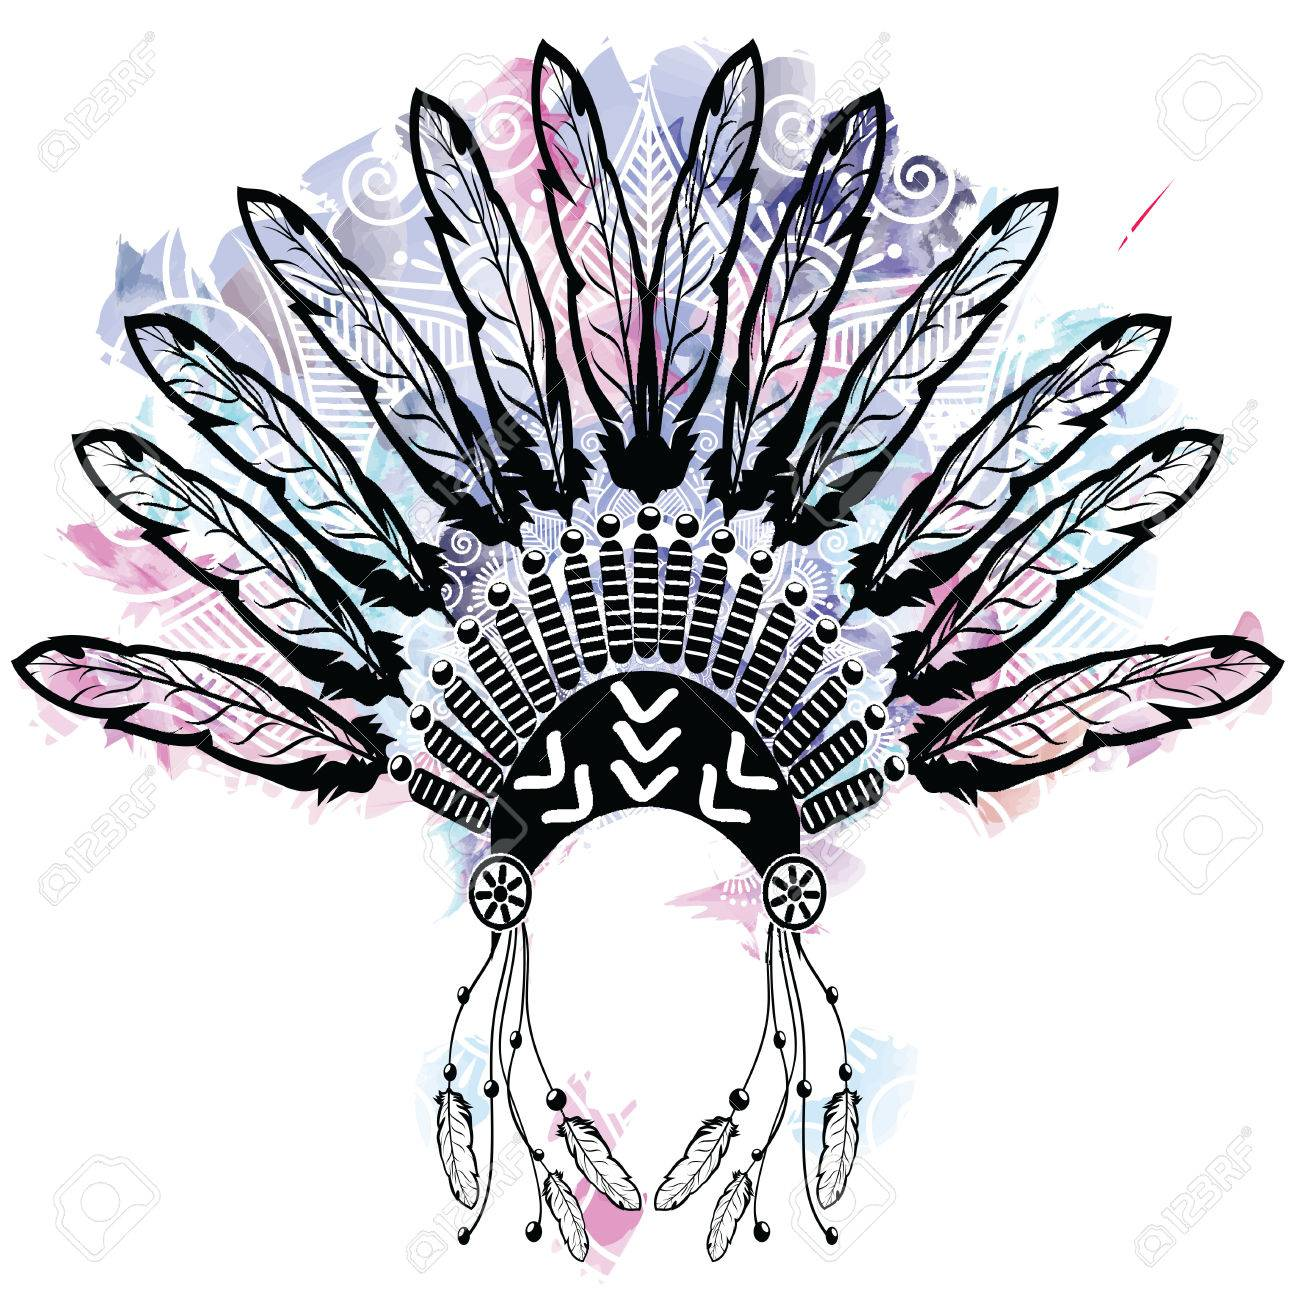 daaa46ec66a12 Aztec style headdress made out of feathers on colorful watercolors  background with mandala lace tattoo style